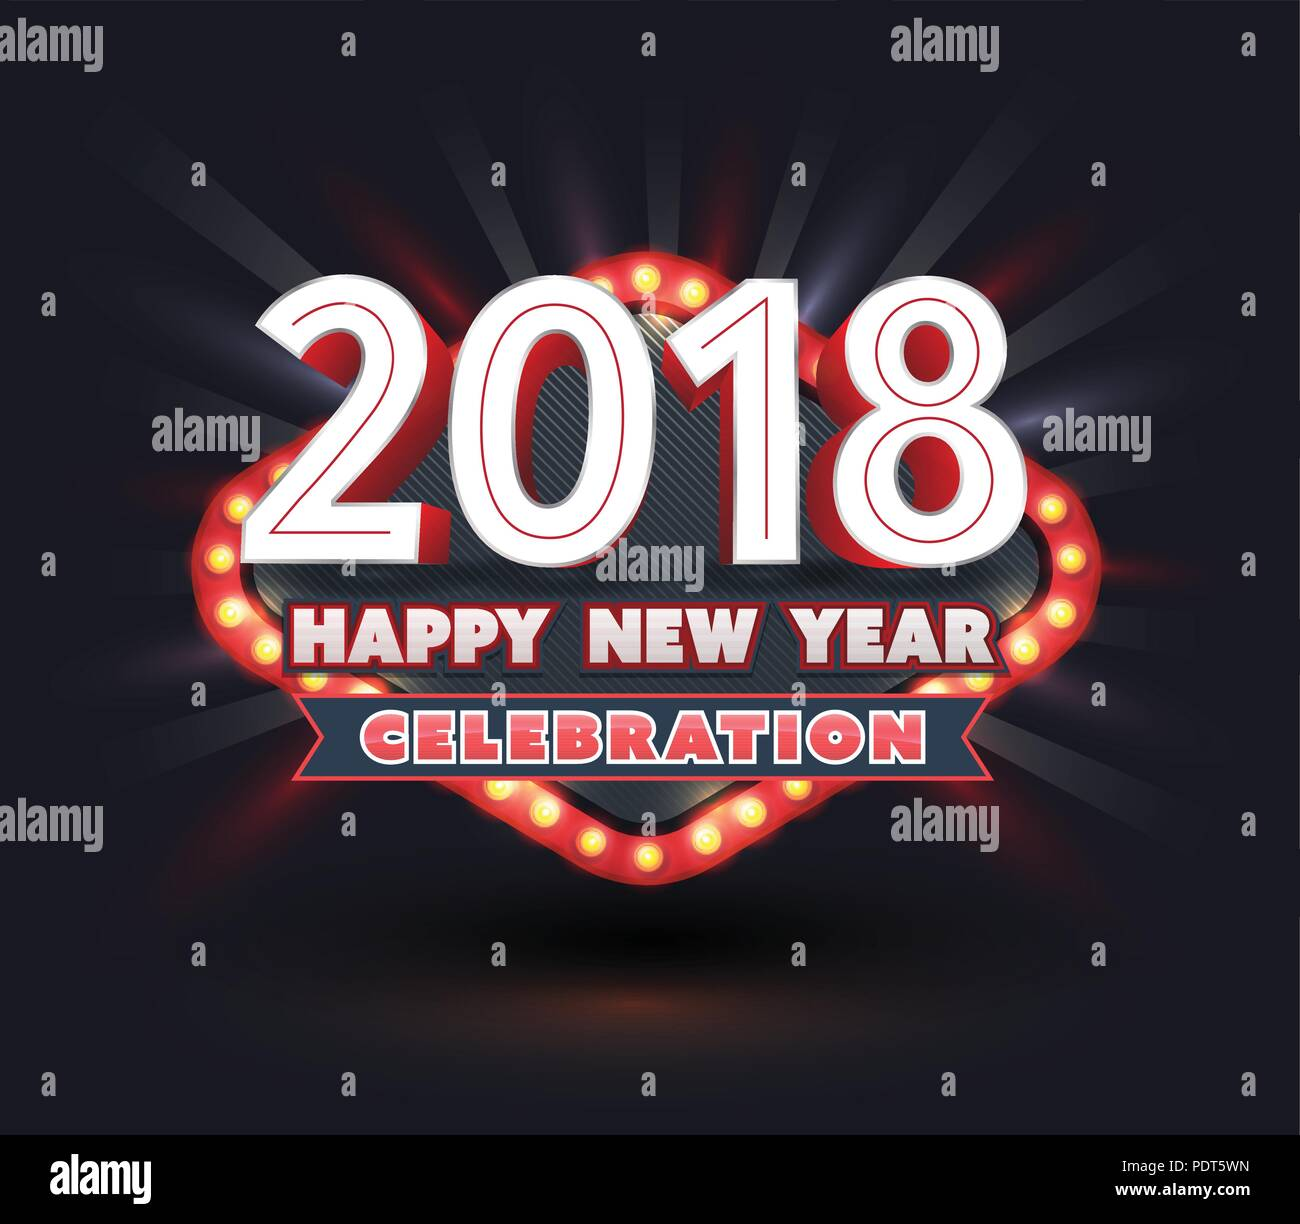 2018 happy new year celebration banner light retro style vector illustration